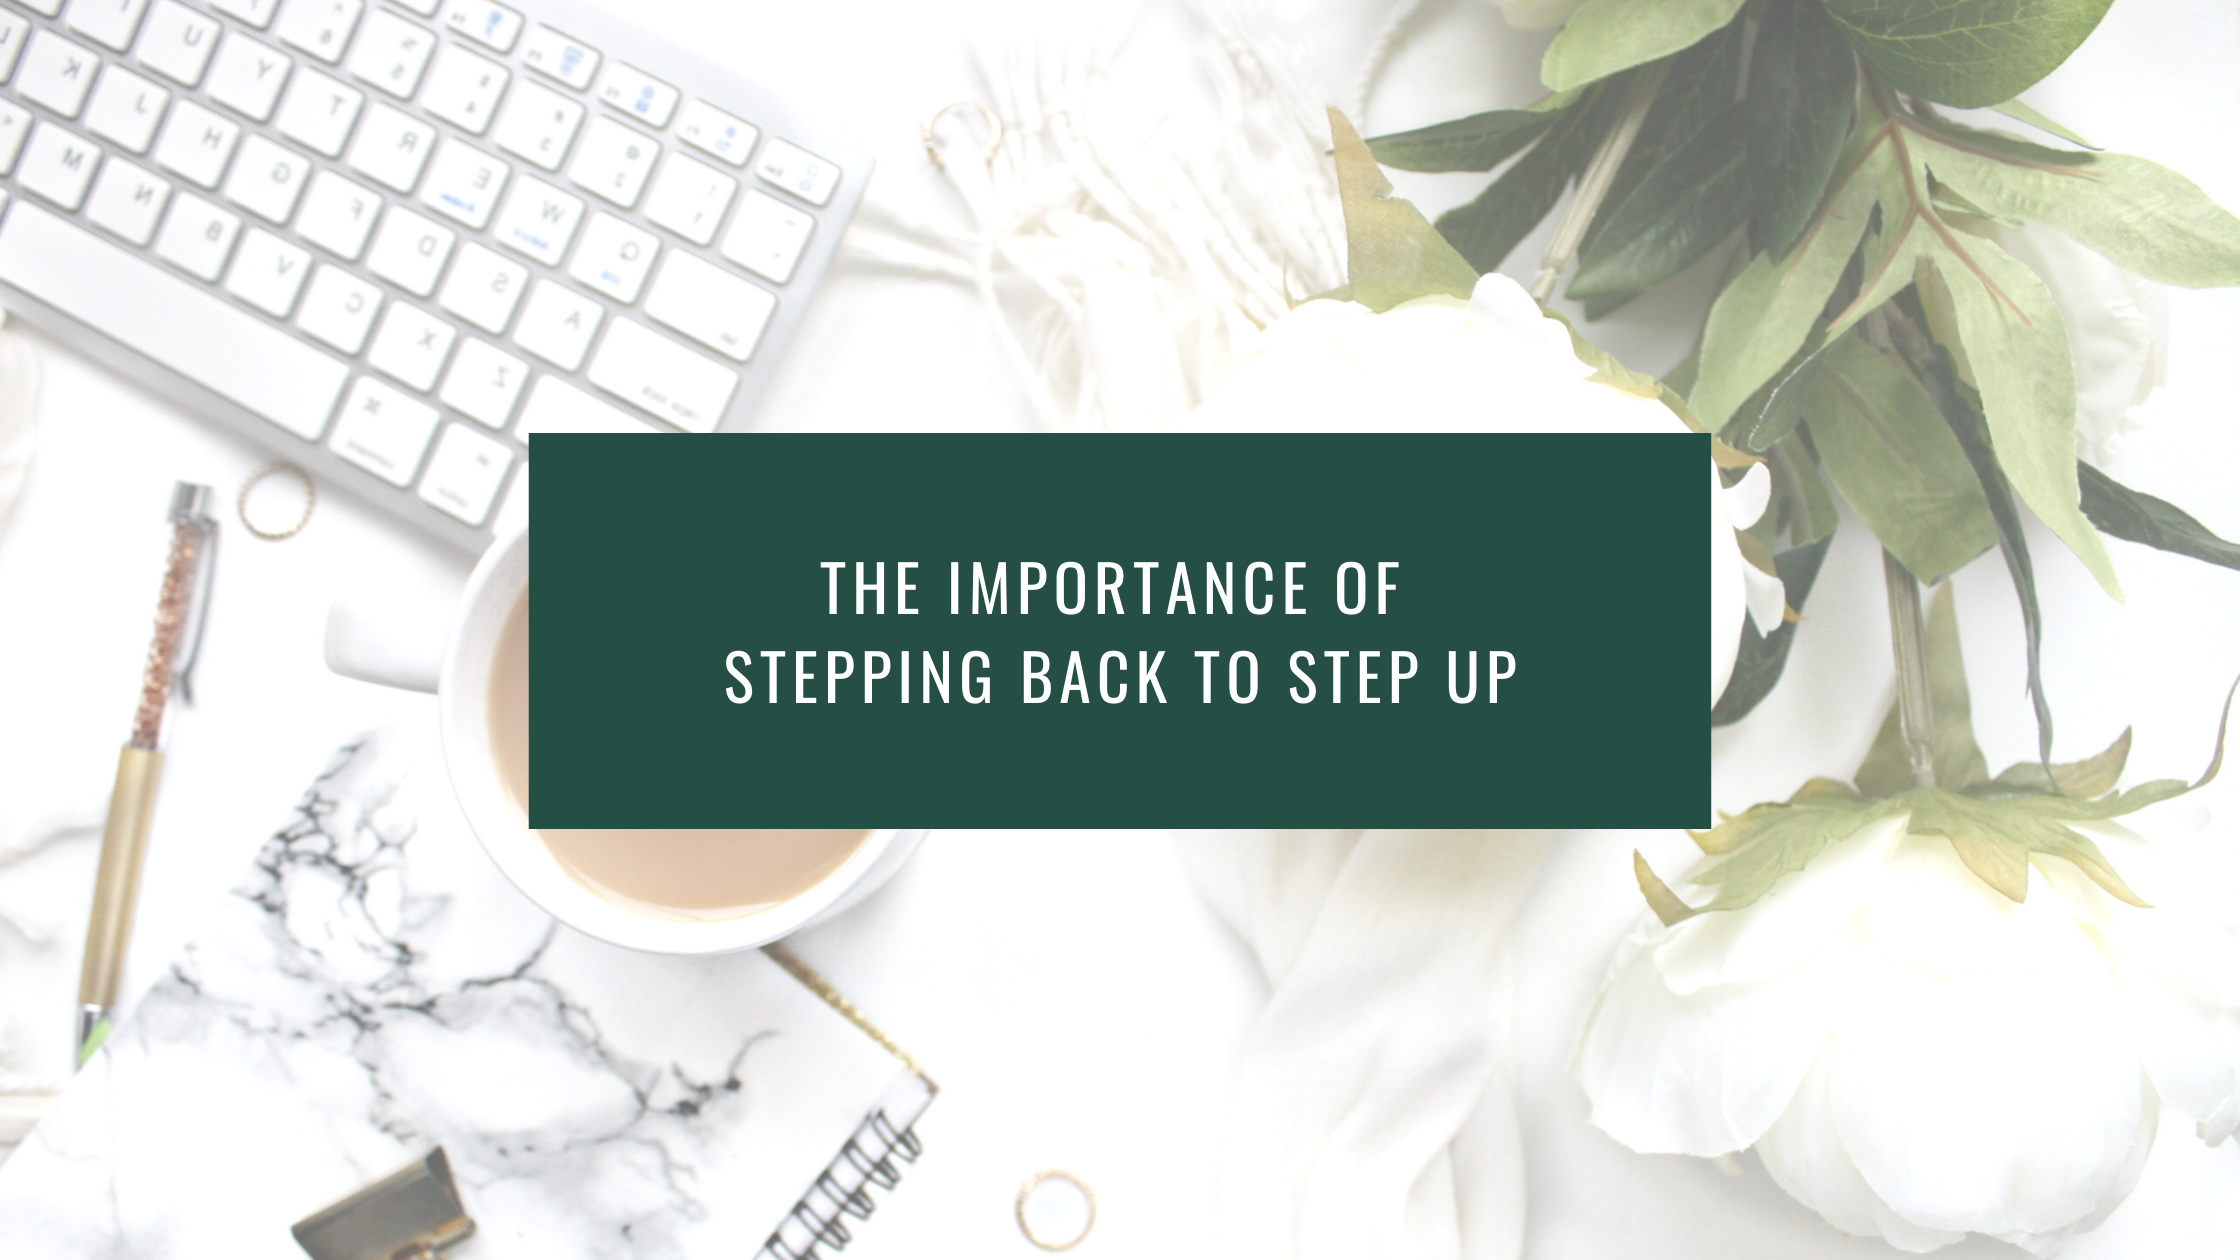 The importance of stepping back to step up